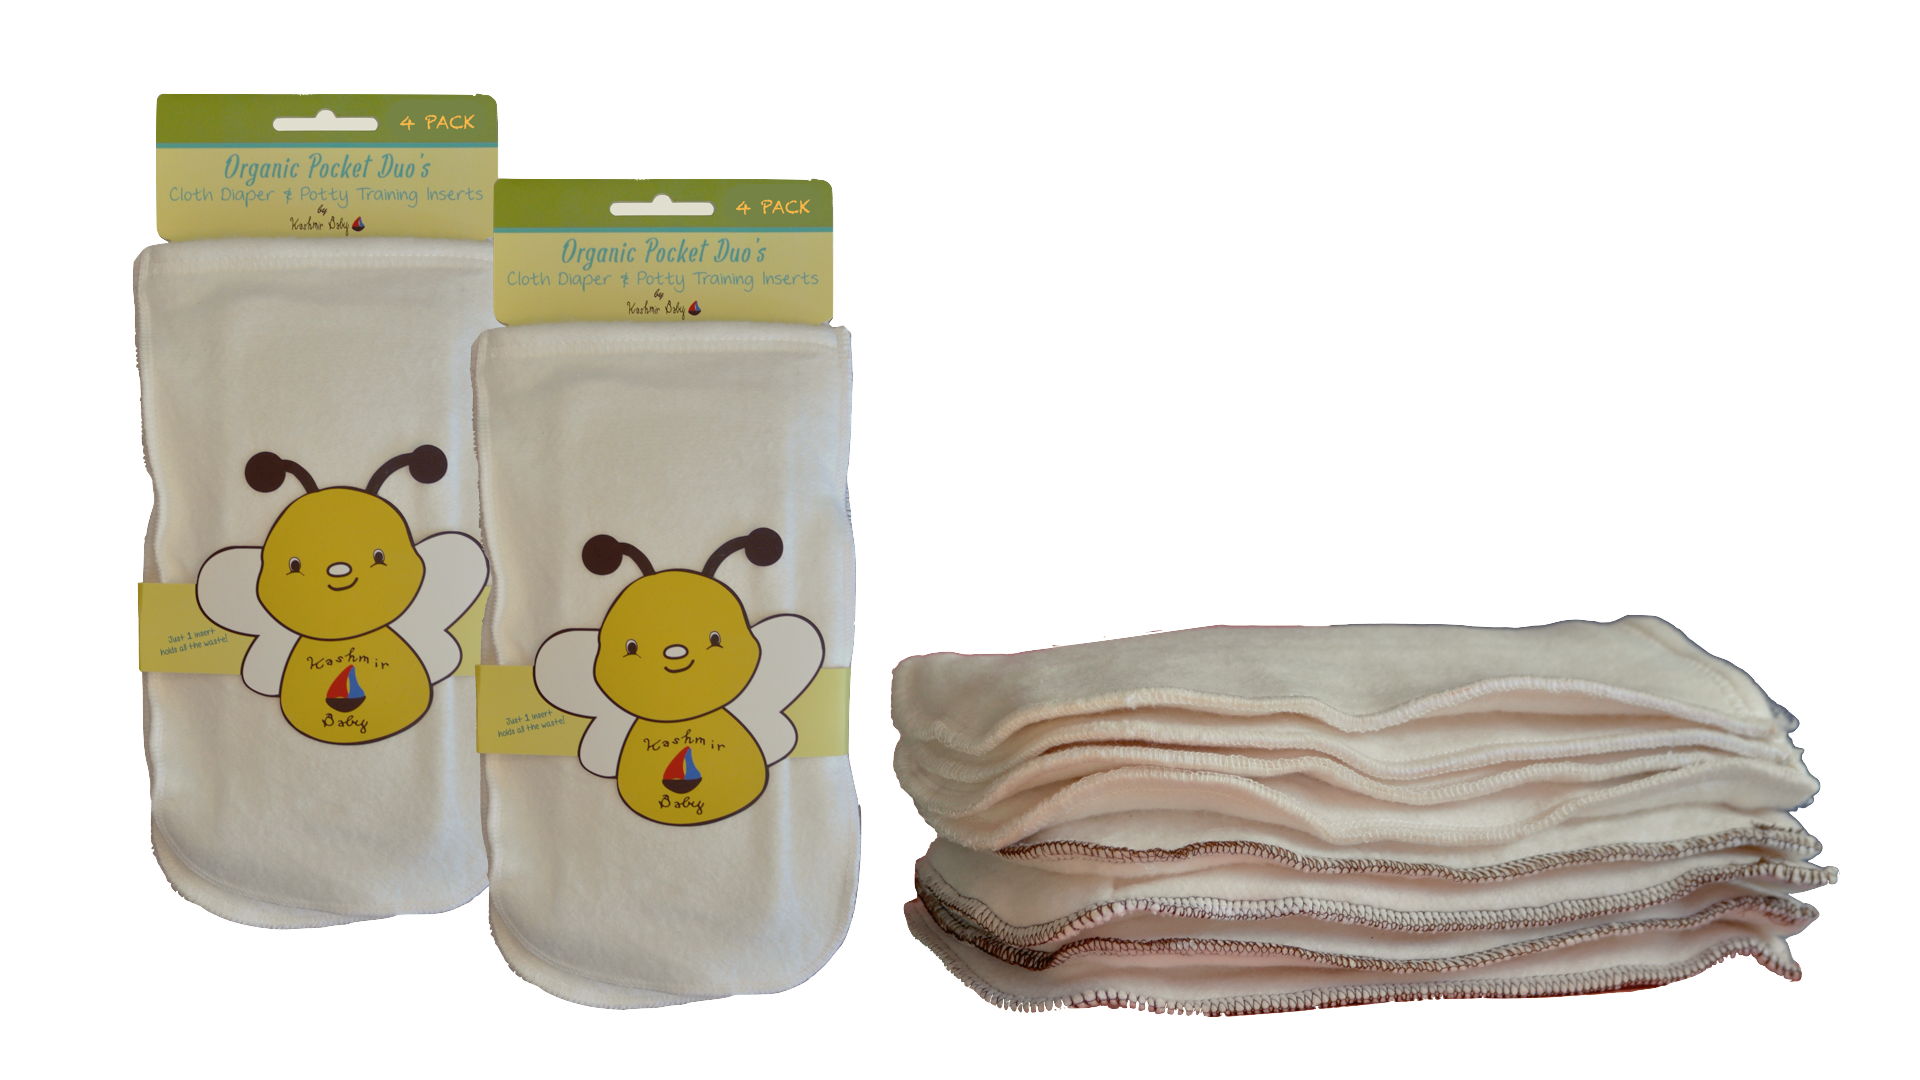 Bamboo/ Organic Cotton Pocket Duo Cloth Diaper & Potty-Training Inserts- 8 Pack: 4 Size Small/4 Size Large